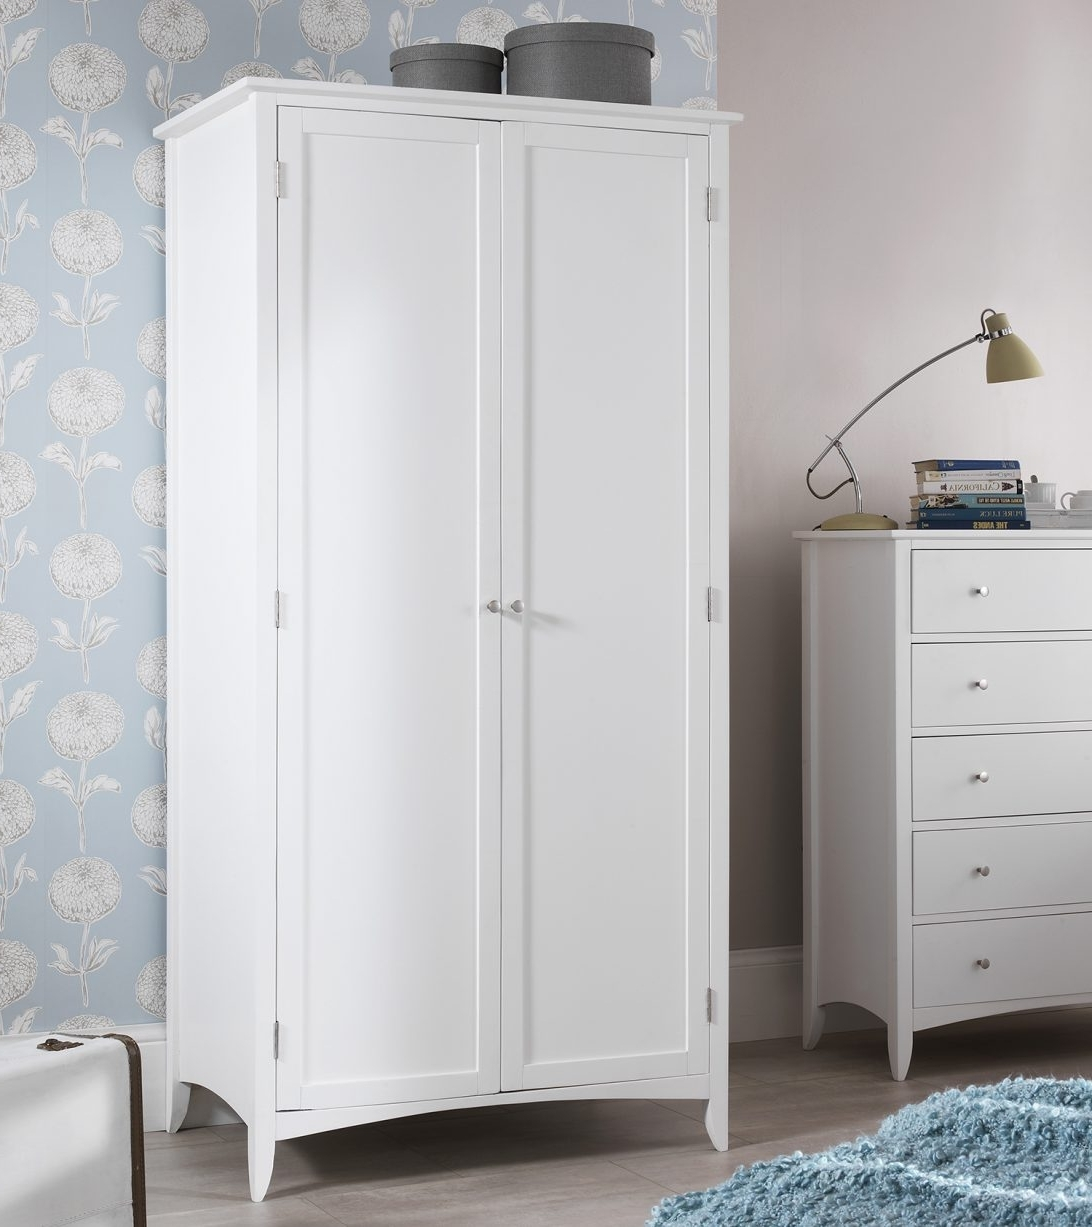 Preferred White Double Wardrobes With Drawers Throughout White Corner Wardrobe With Drawers 3 Door And Mirror Shelves (View 6 of 15)